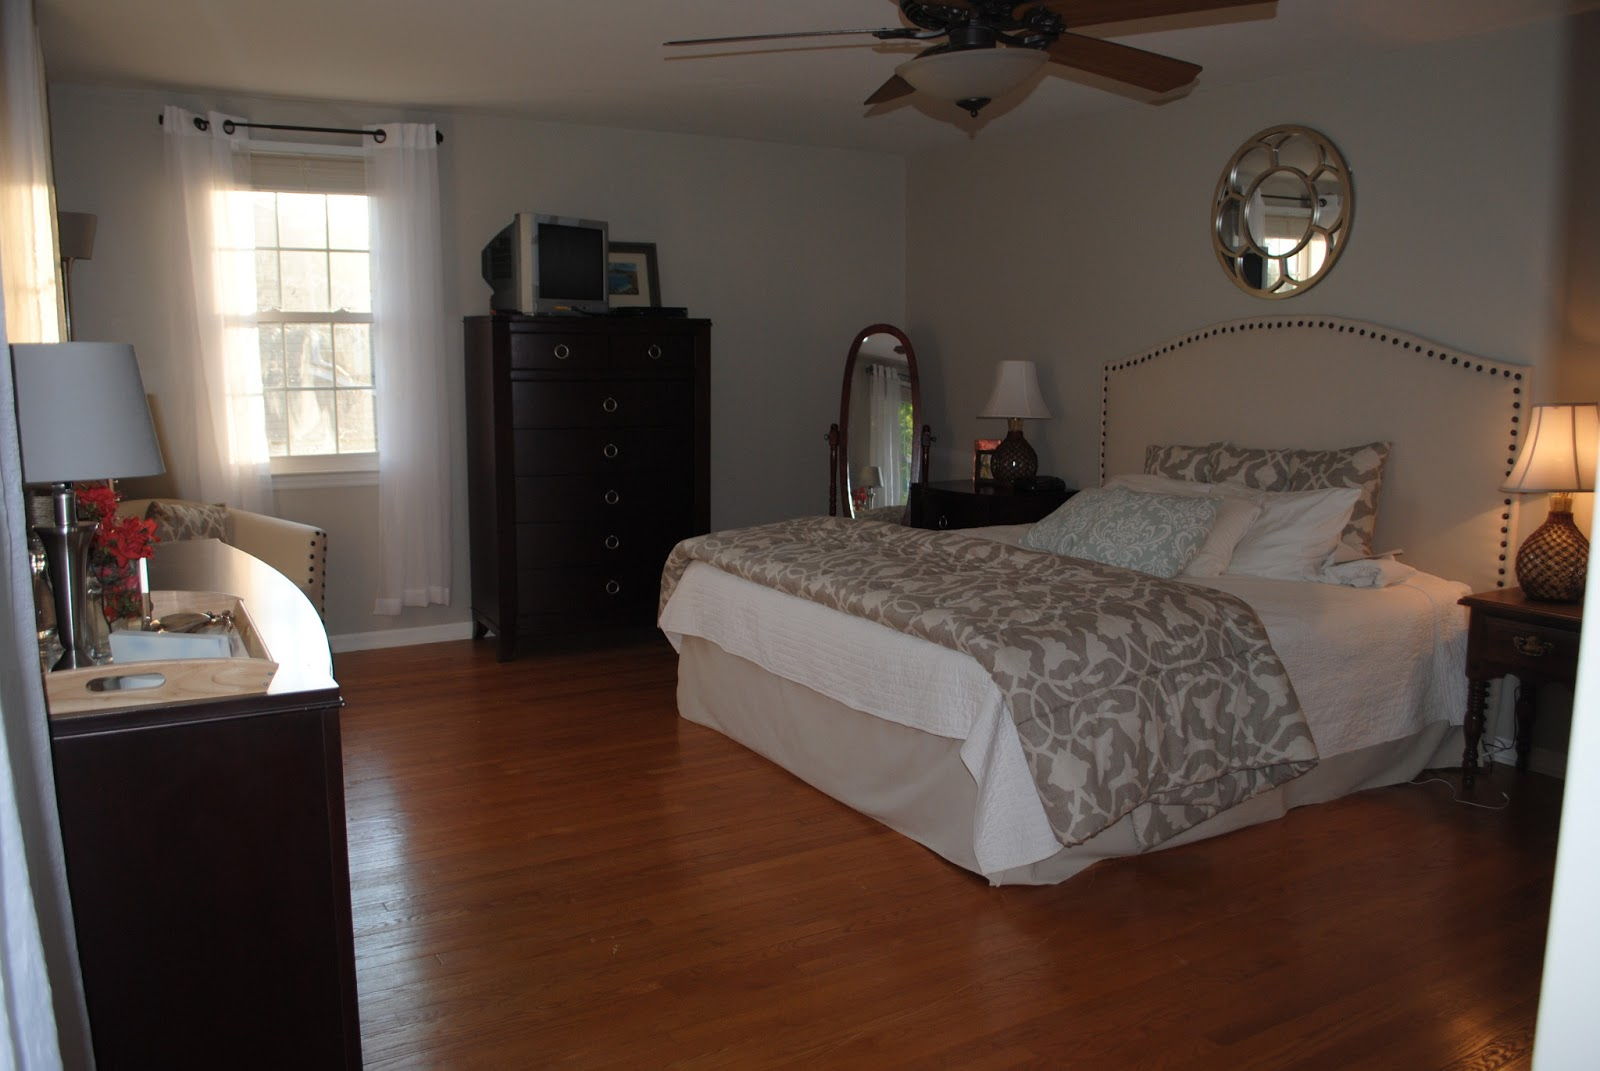 Master Bedroom Makeover new mama's corner: master bedroom makeover reveal: from drab to